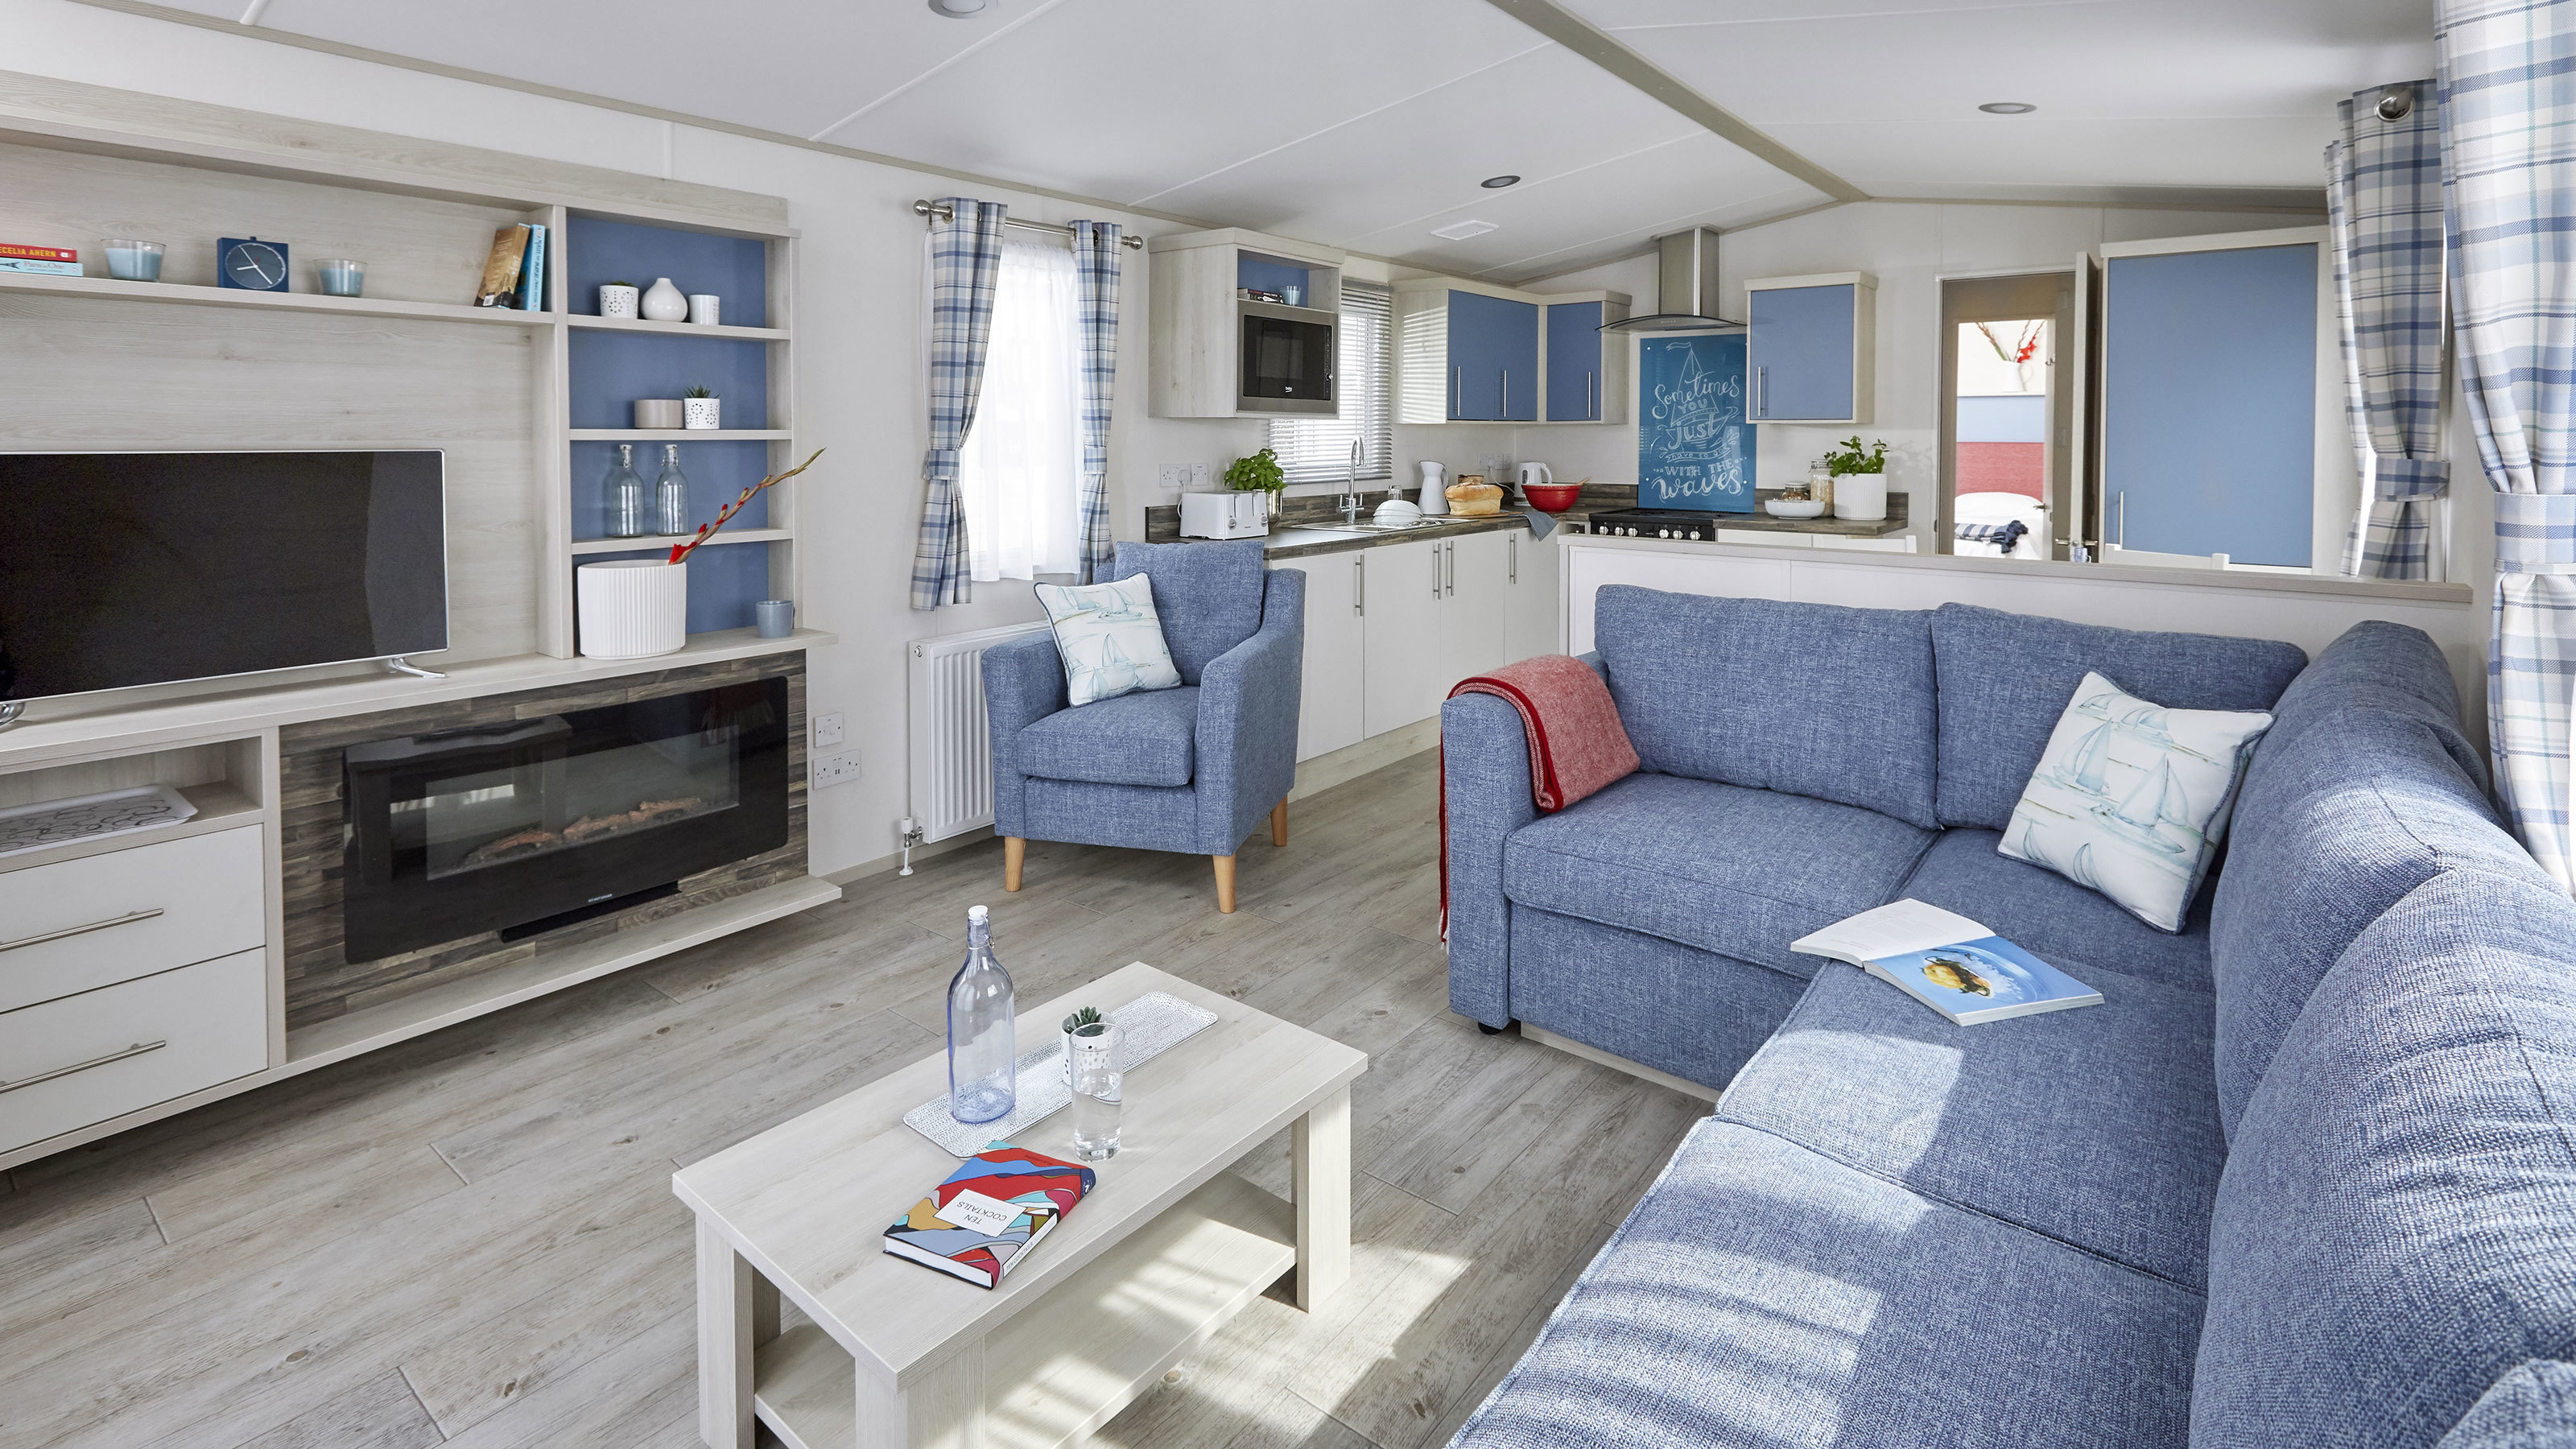 Seaside-Caravans-with-Shorefield-Holidays-have-a-calm-seaside-theme-throughout